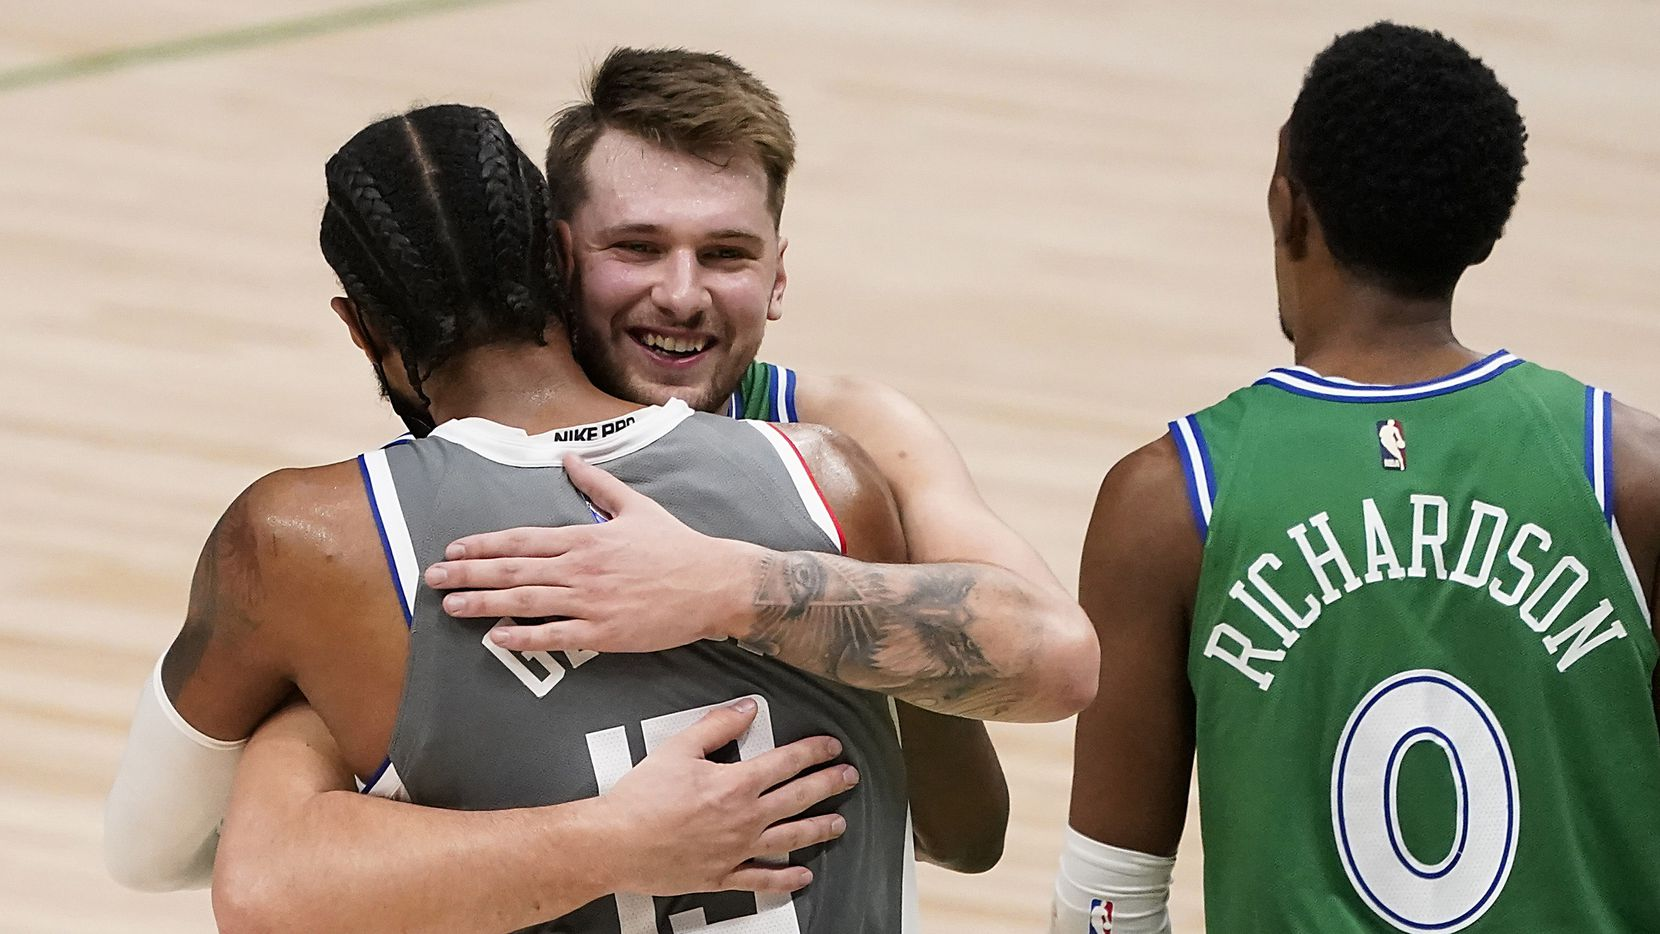 Mavericks guard Luka Doncic hugs Clippers guard Paul George after the Mavs' 105-89 win at American Airlines Center on Wednesday, March 17, 2021, in Dallas.